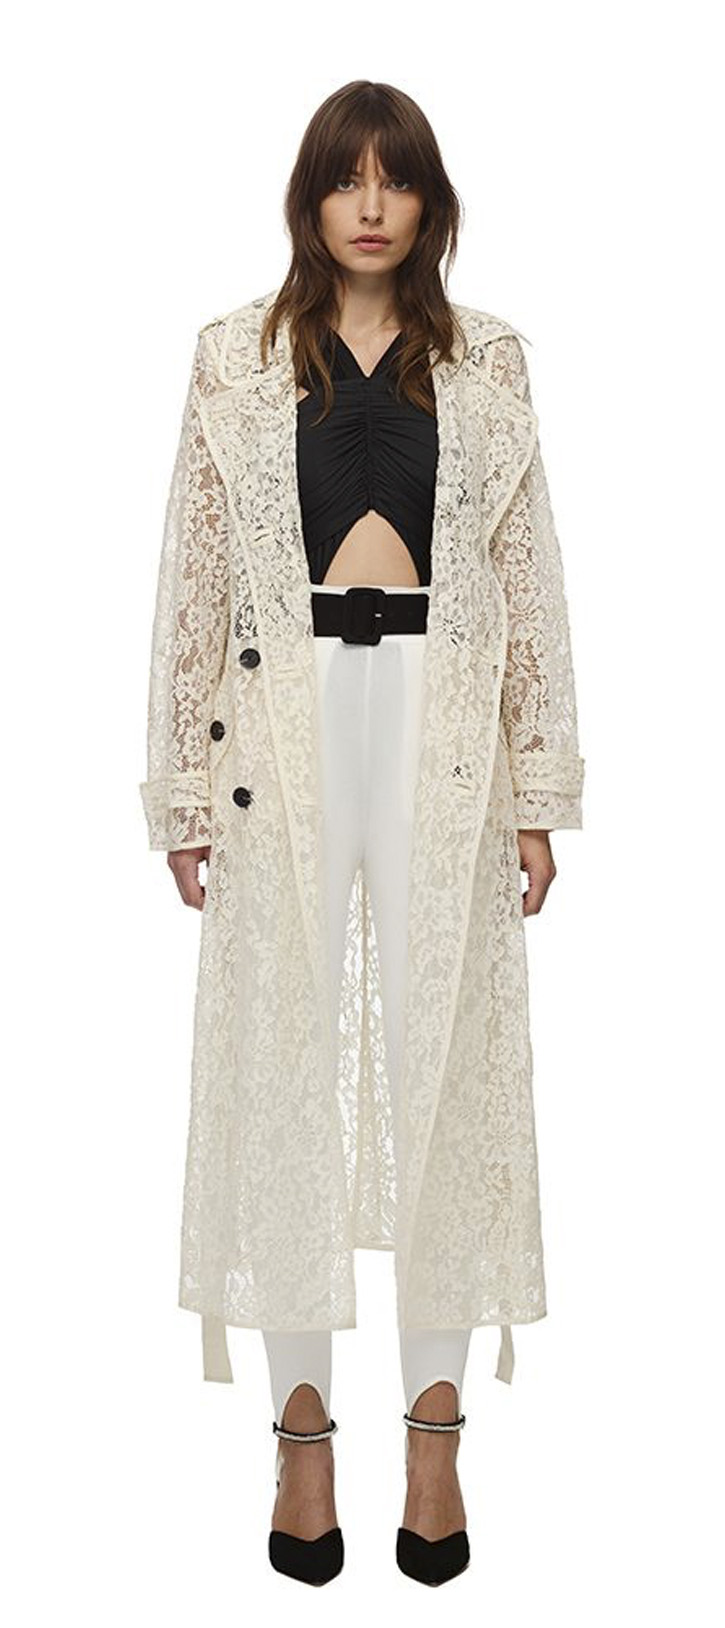 058 CORD LACE TRENCH COAT